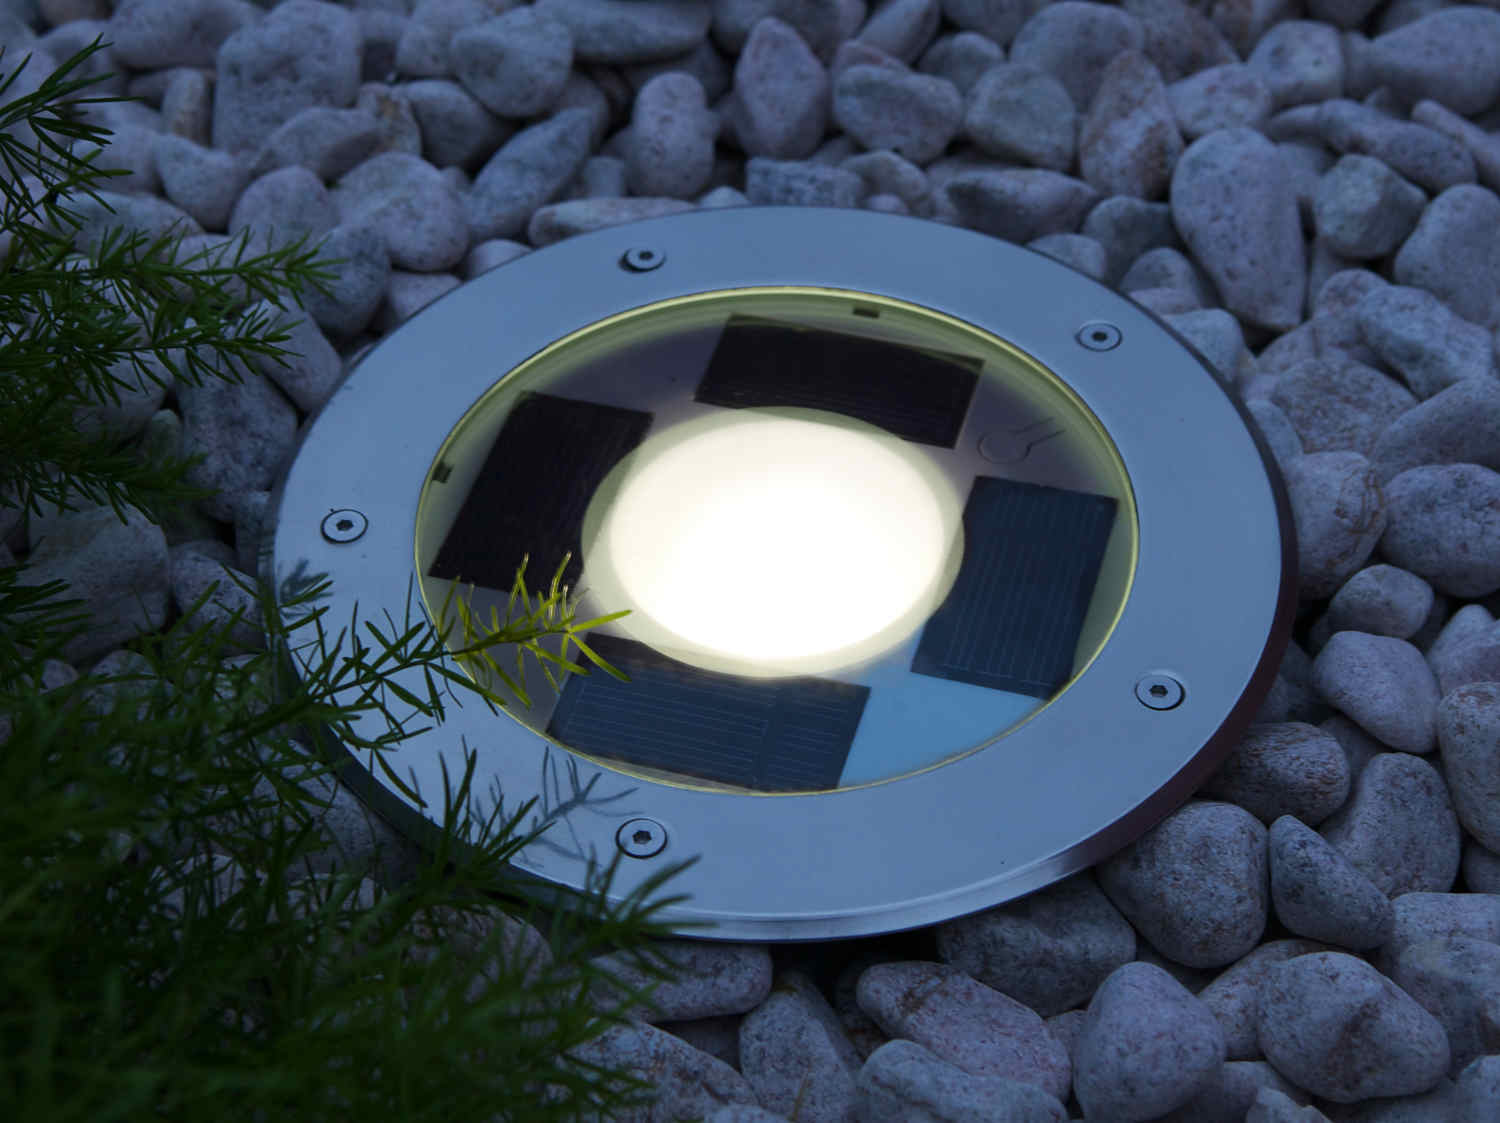 Eclairer son jardin leroy merlin for Eclairage exterieur solaire led leroy merlin